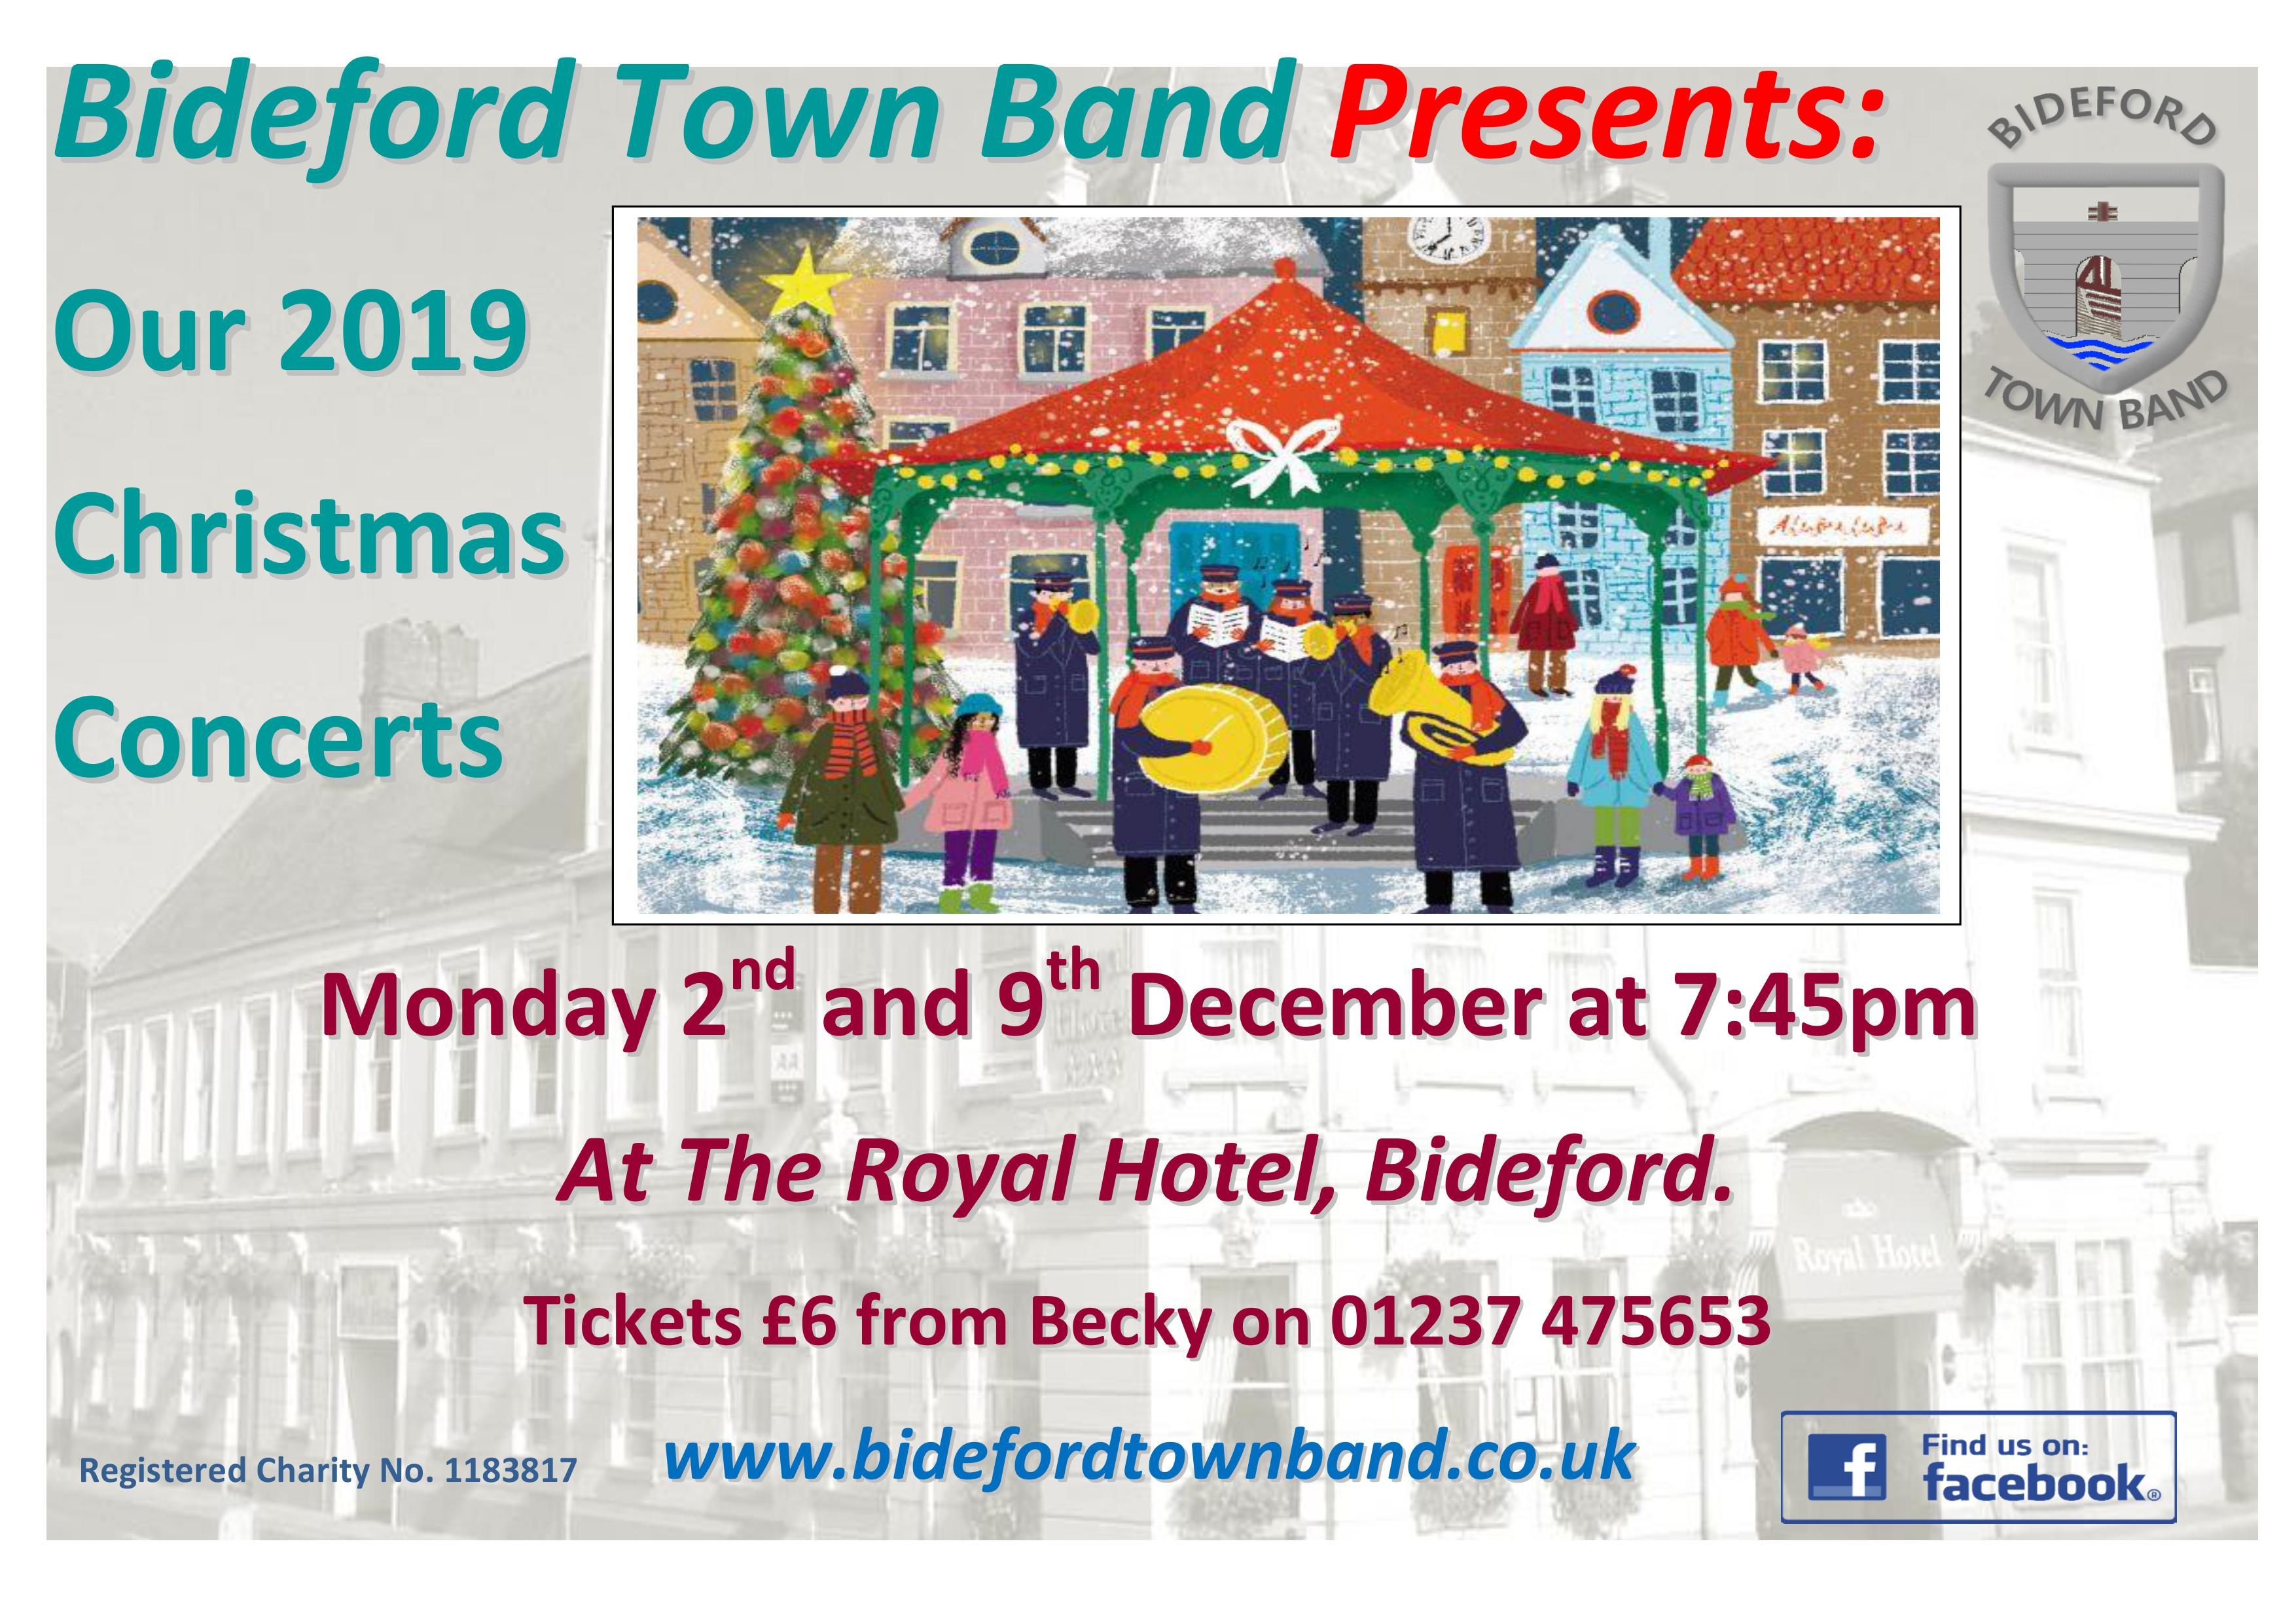 Bideford Town Band Christmas Concerts 2019